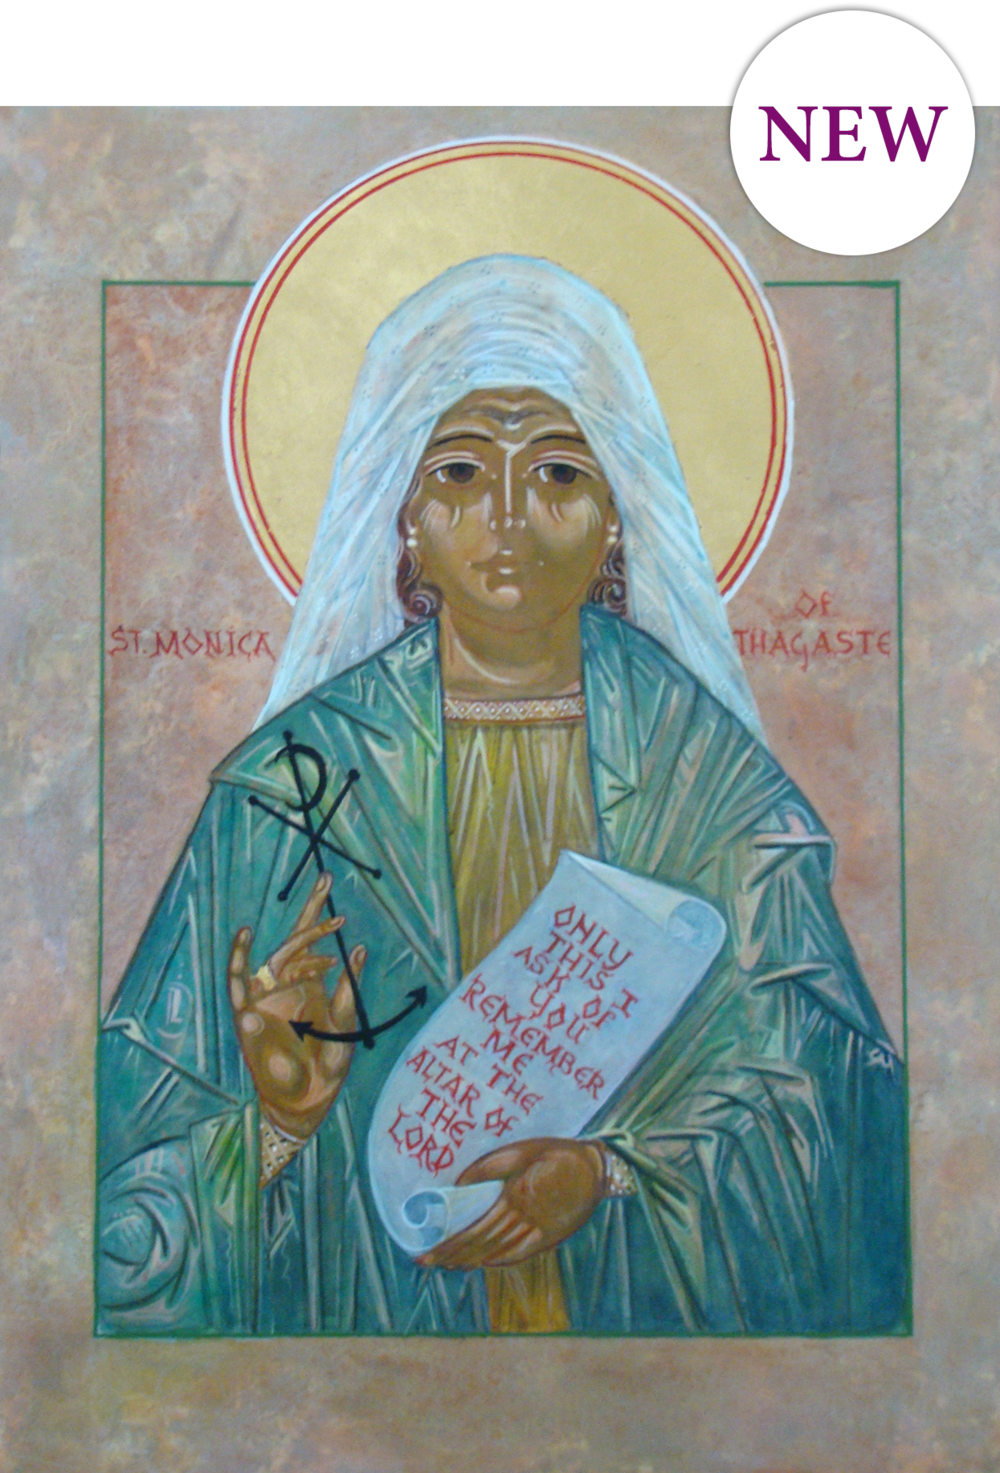 "SAINT MONICA SYMPATHY CARD    Suggested donation:  $10.00   Size:   5 x 7     This new sympathy Mass card features an icon of Saint Monica by Richard G. Cannuli, O.S.A. and the words of Saint Monica at the time of her death, ""Only this I ask of you, remember me at the altar of the Lord."""